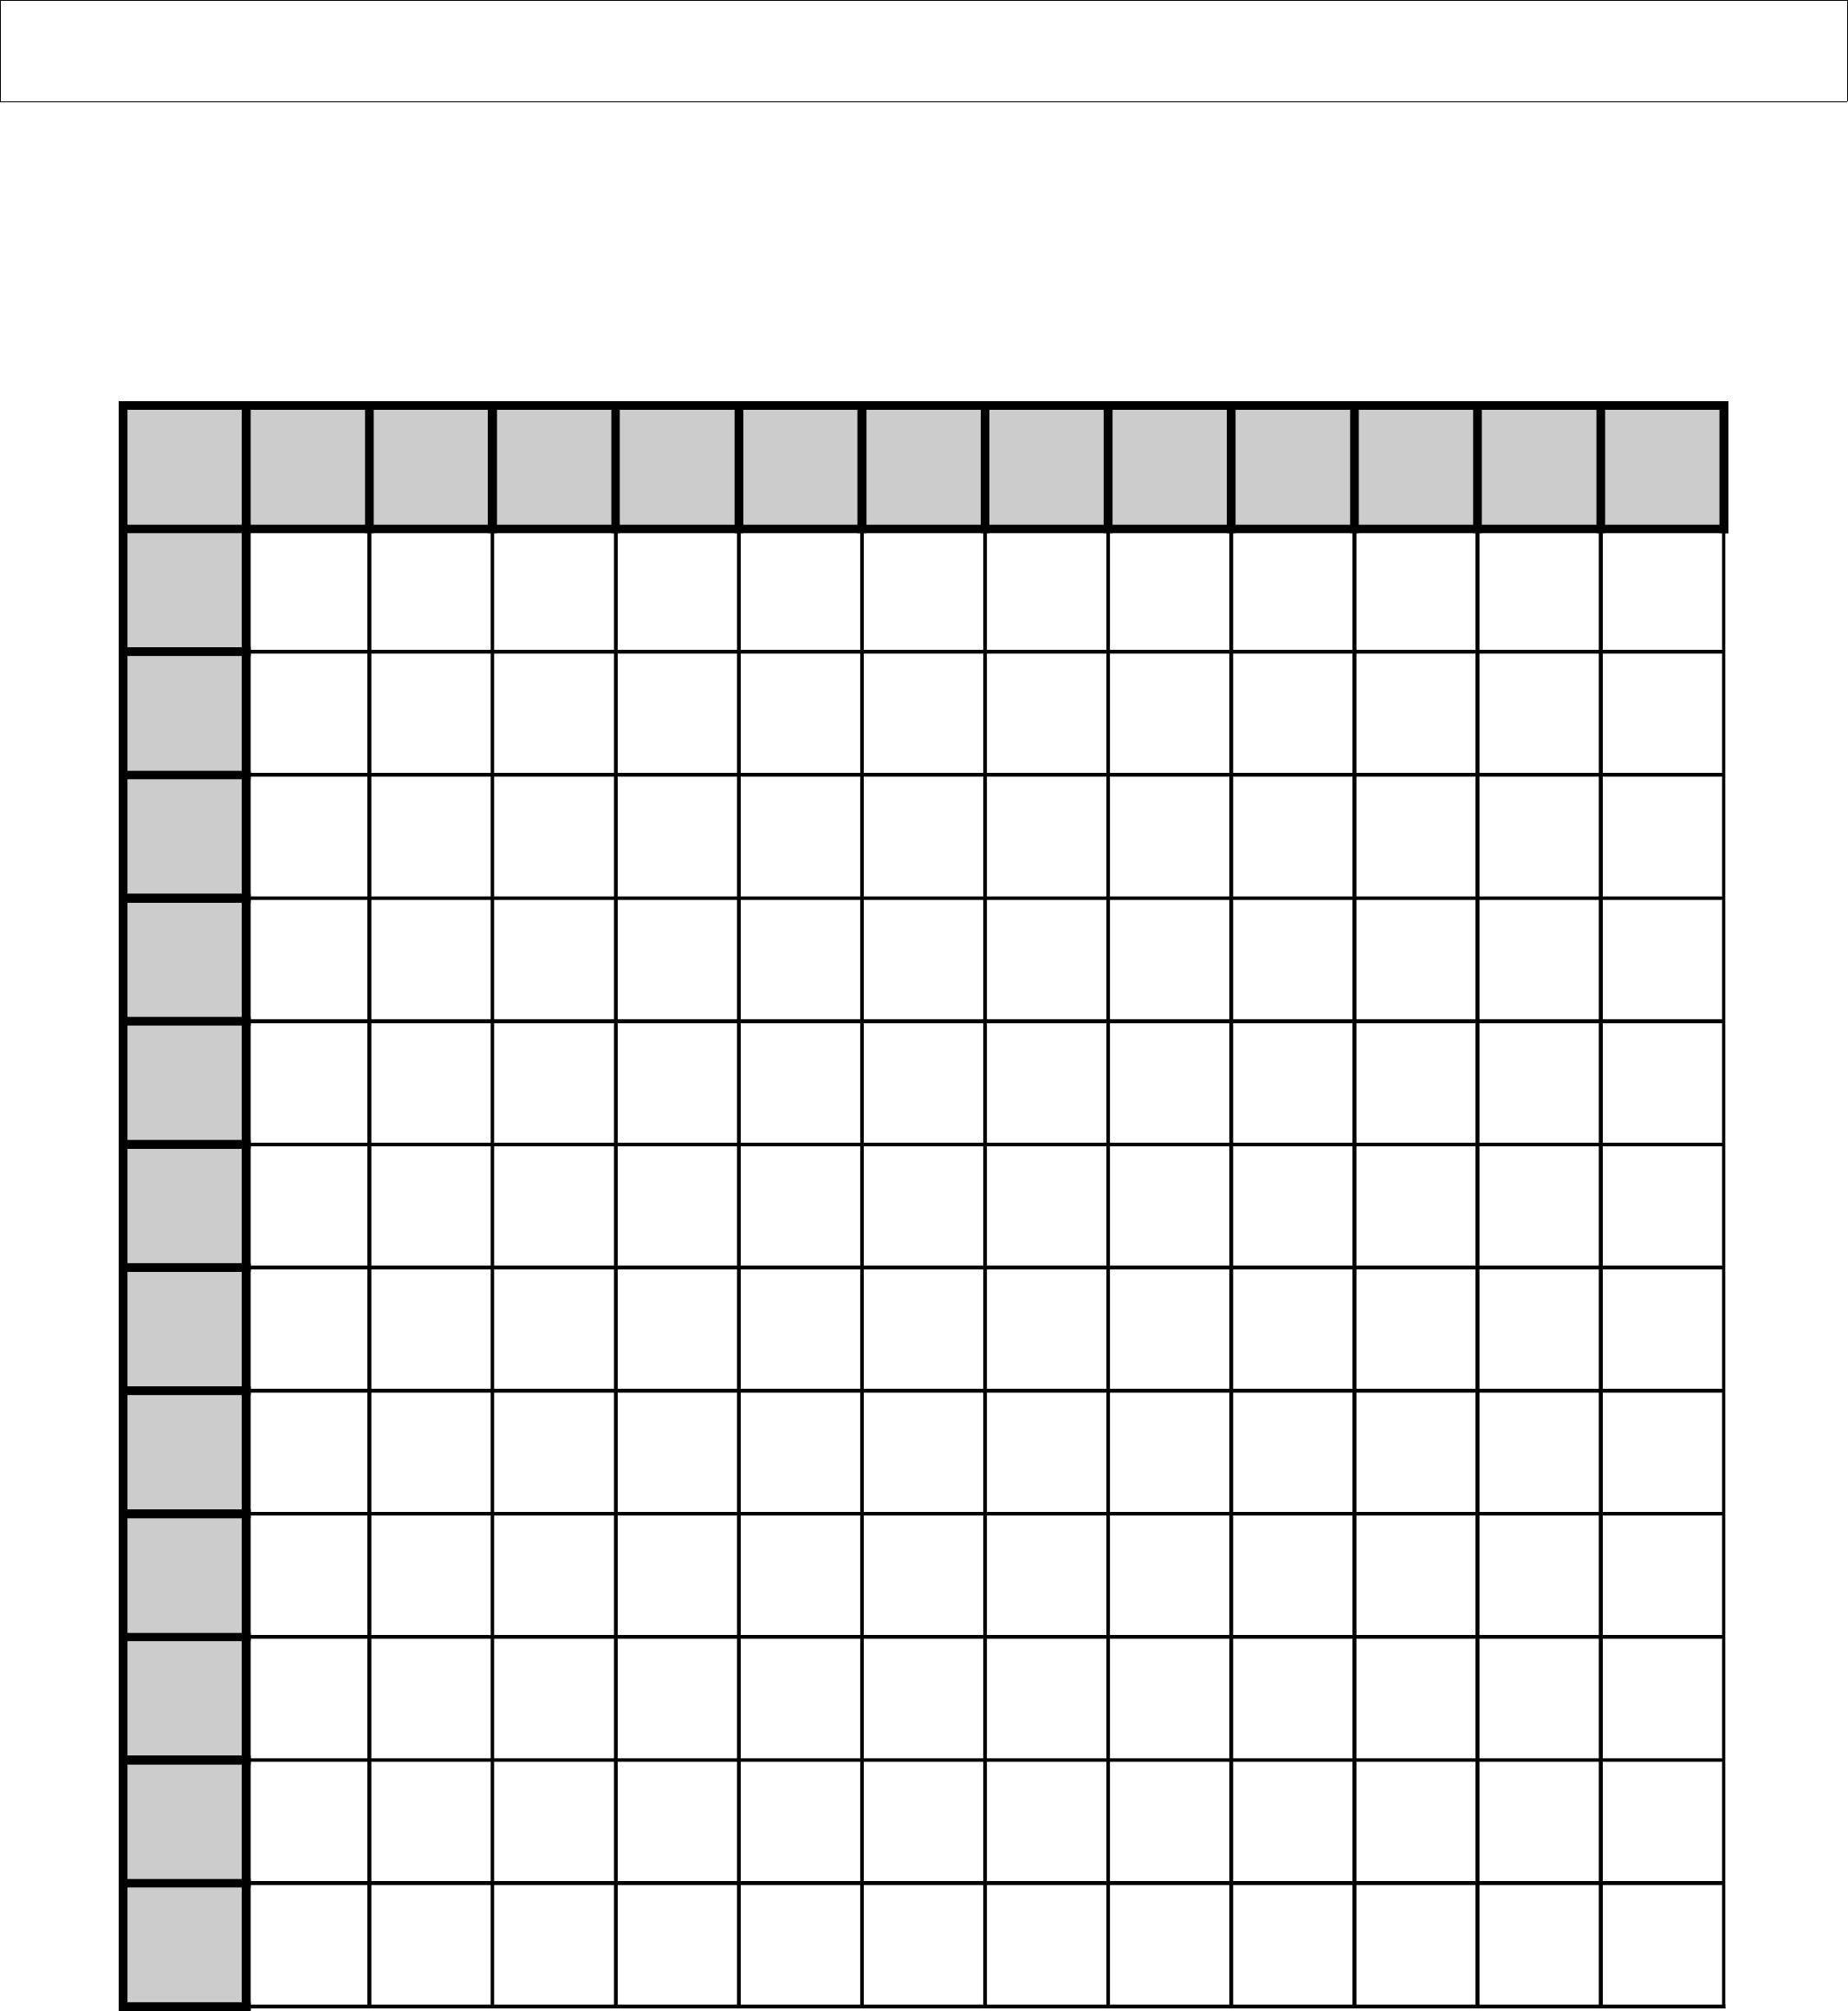 Multiplication Blank Table Printable